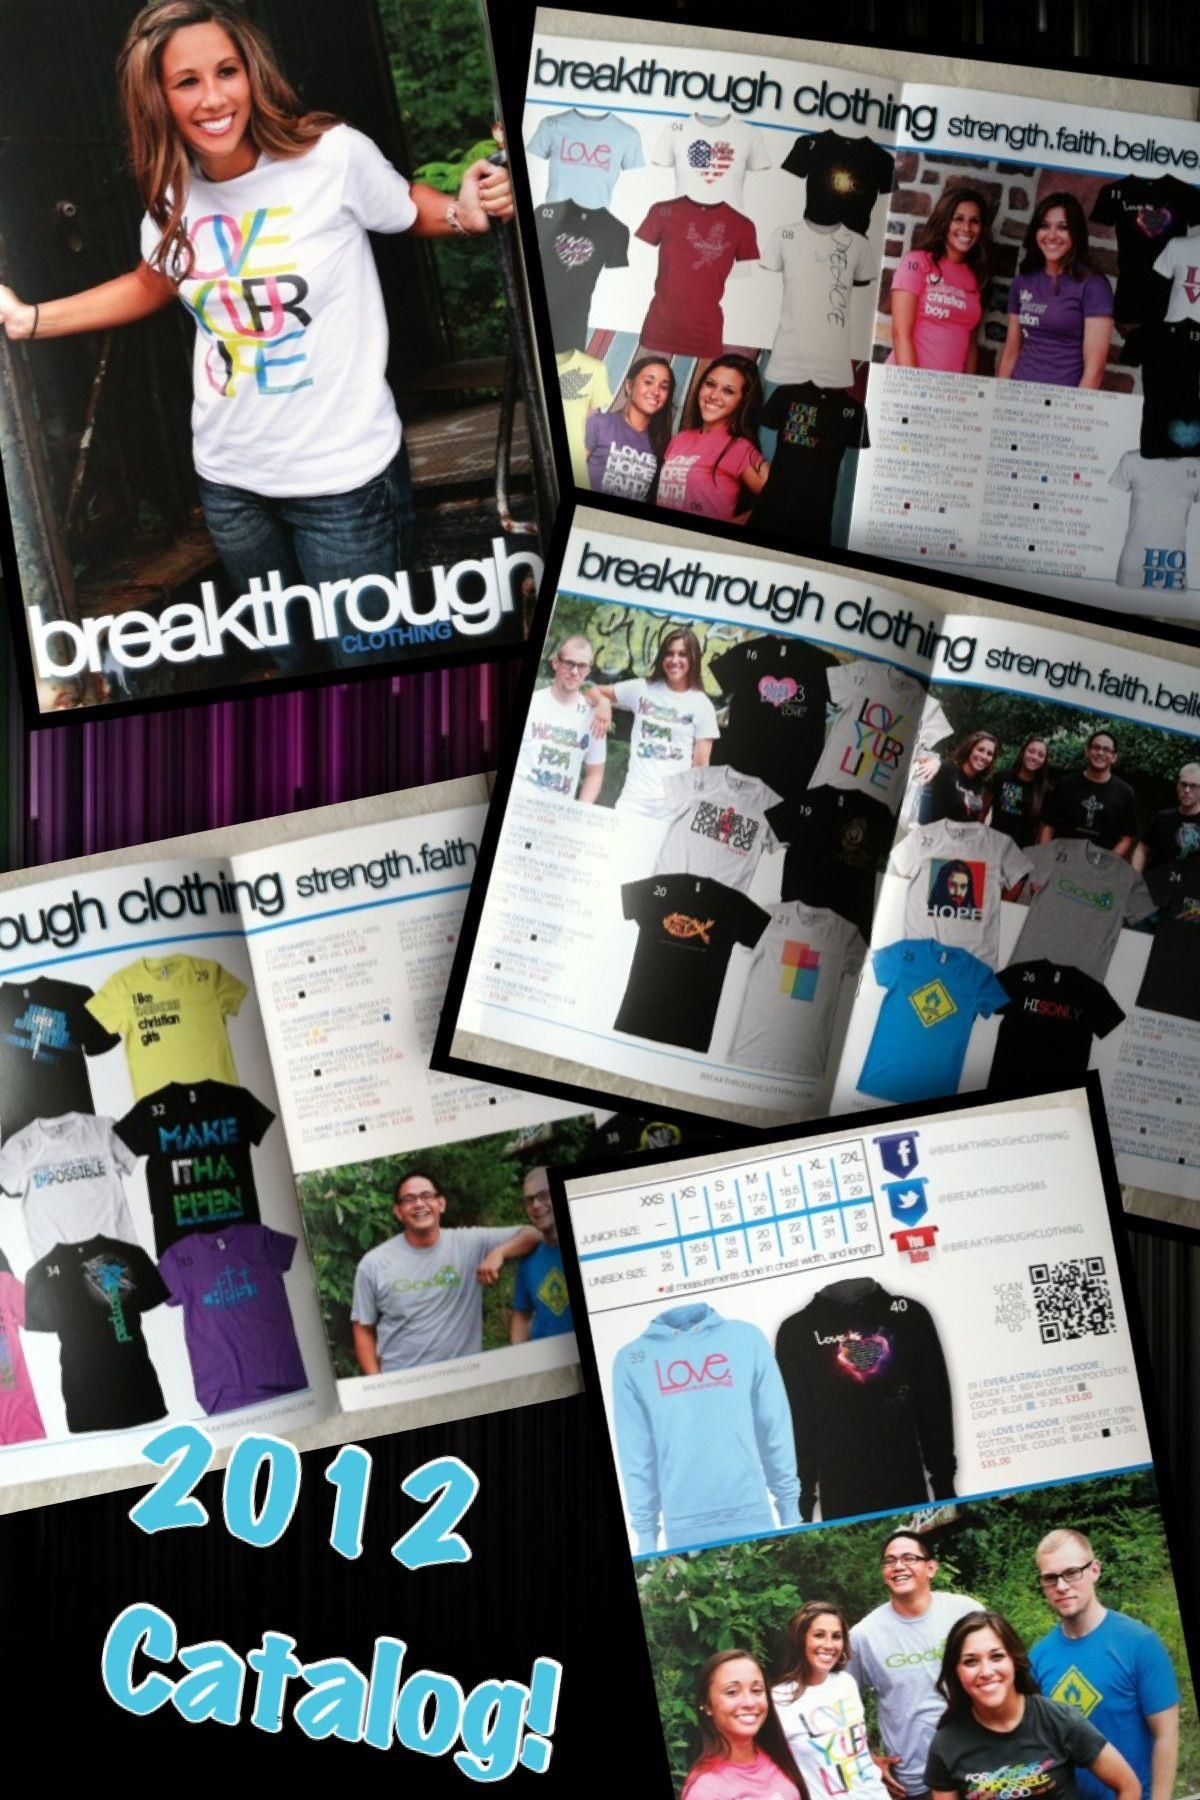 Breakthrough Clothing's 2012 Catalog! Want your very own? :) Message us on Facebook, comment on this photo, or email breakthroughclothing@gmail.com. This is the ideal fundraising opportunity!  With a 100% guarantee your group will make a profit!